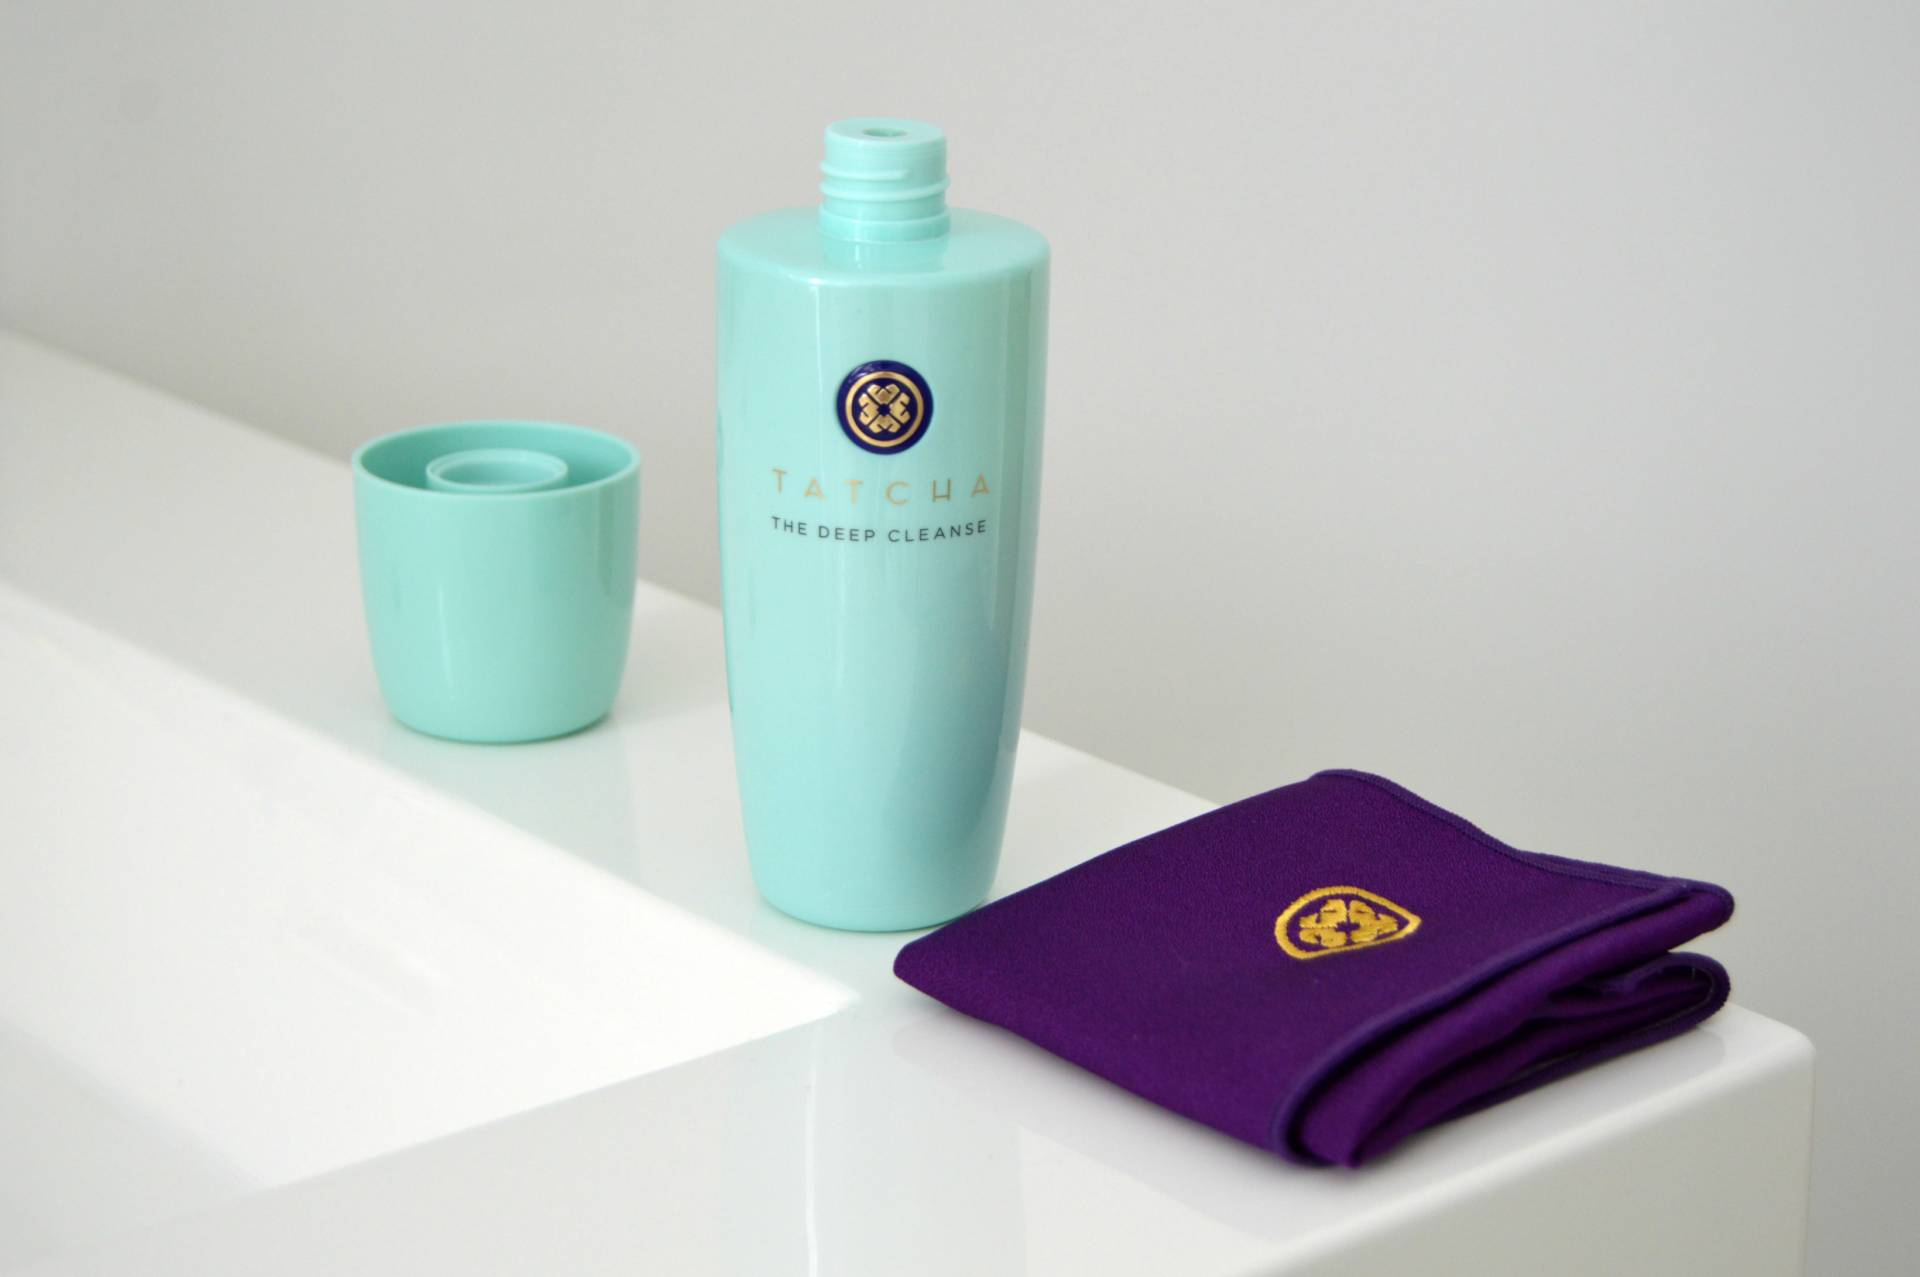 Omgbart_Reviews_The_Deep_Cleanse_From_Tatcha_1.jpg